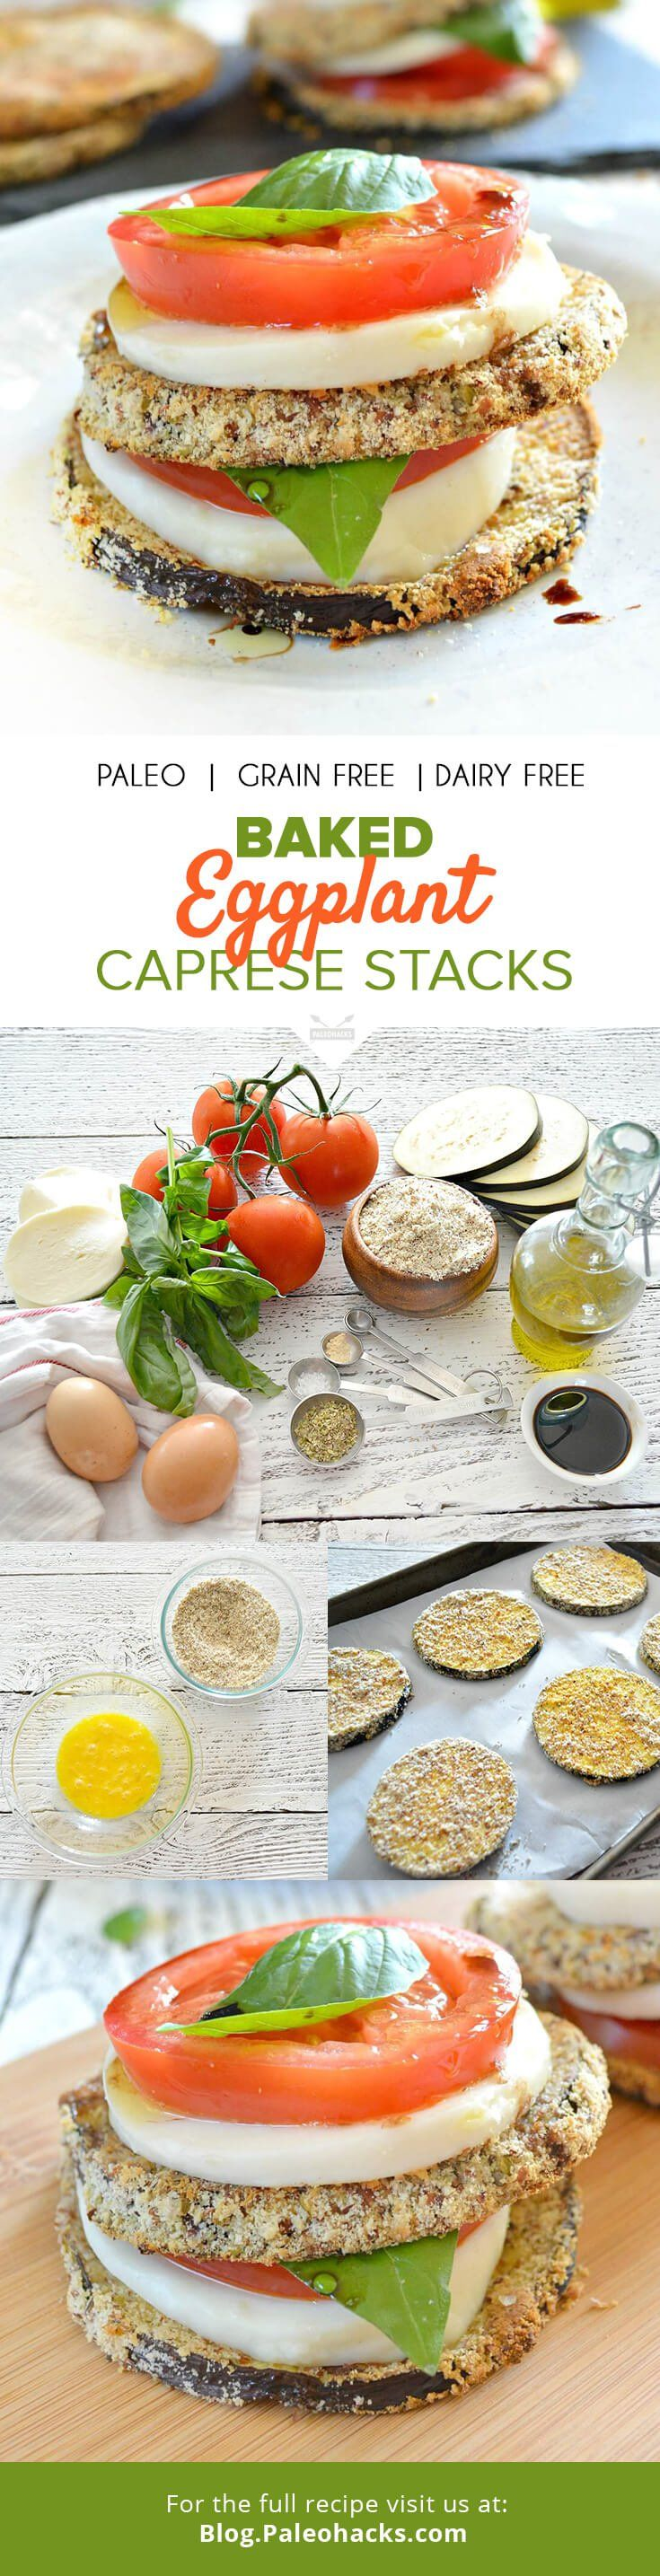 These baked eggplant Caprese stacks make for a stunning appetizer or side dish. Instead of frying in oil, eggplant slices are coated in almond meal and baked to crispy perfection. For the full recipe, visit us here: http://paleo.co/capresestacks